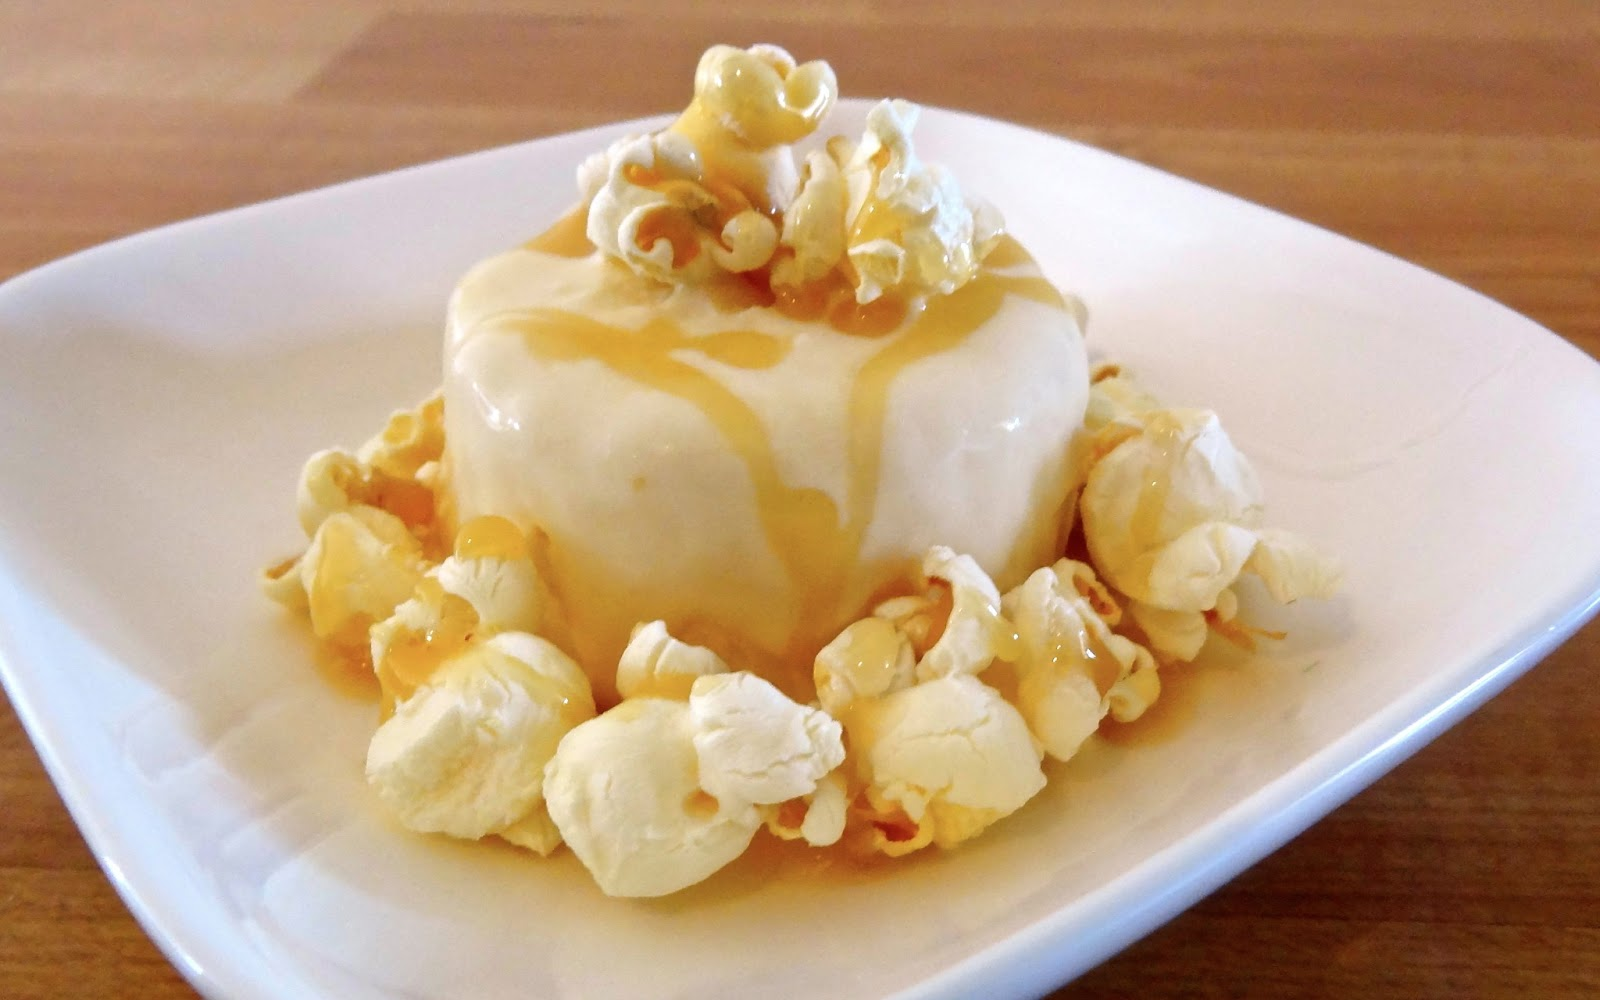 ... and Ramblings: Popcorn Ice Cream with Salted Butter Caramel Sauce